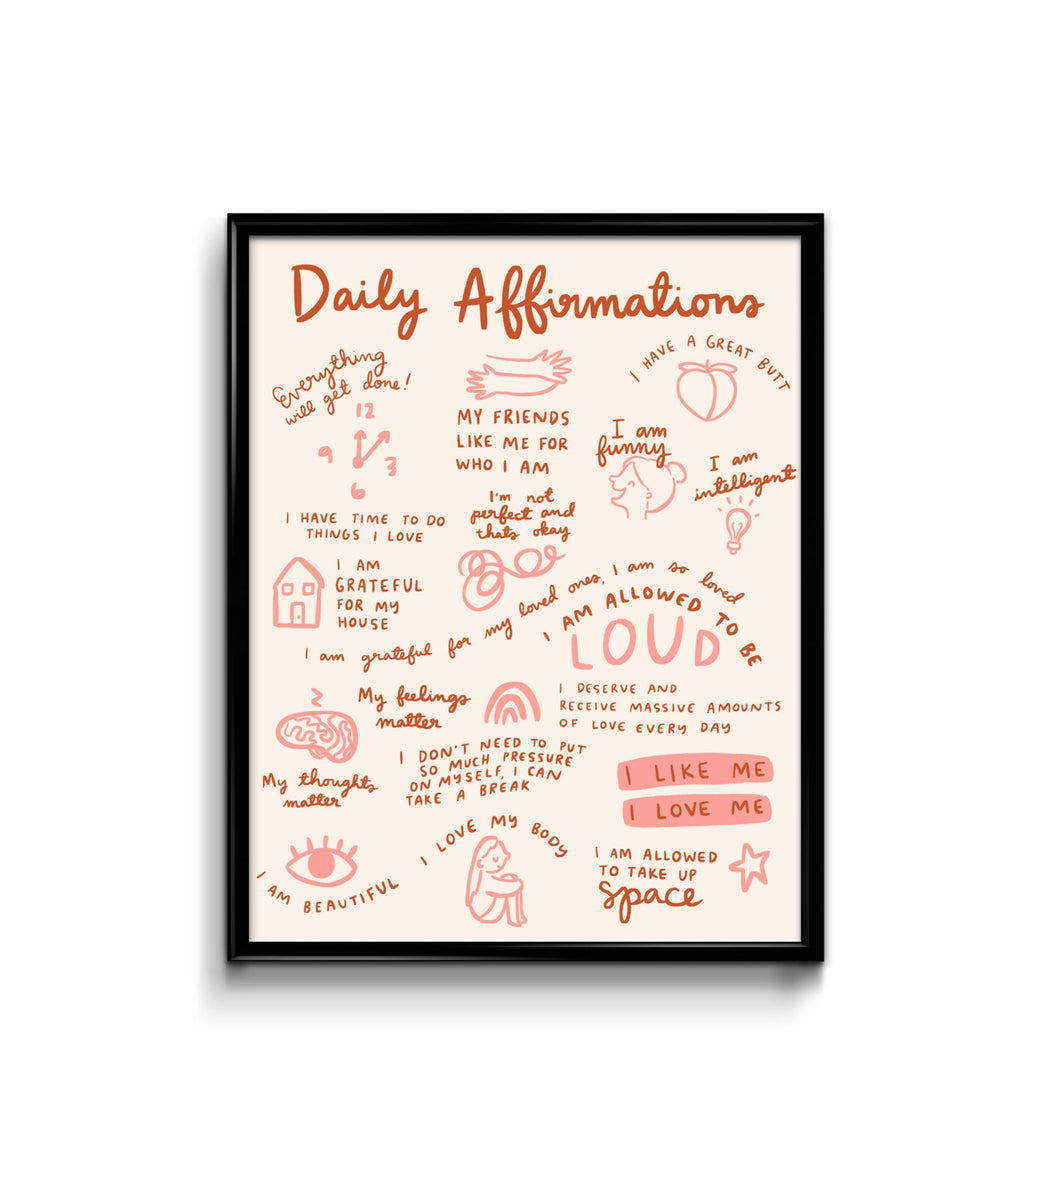 Daily Affirmations Art Print 8x10